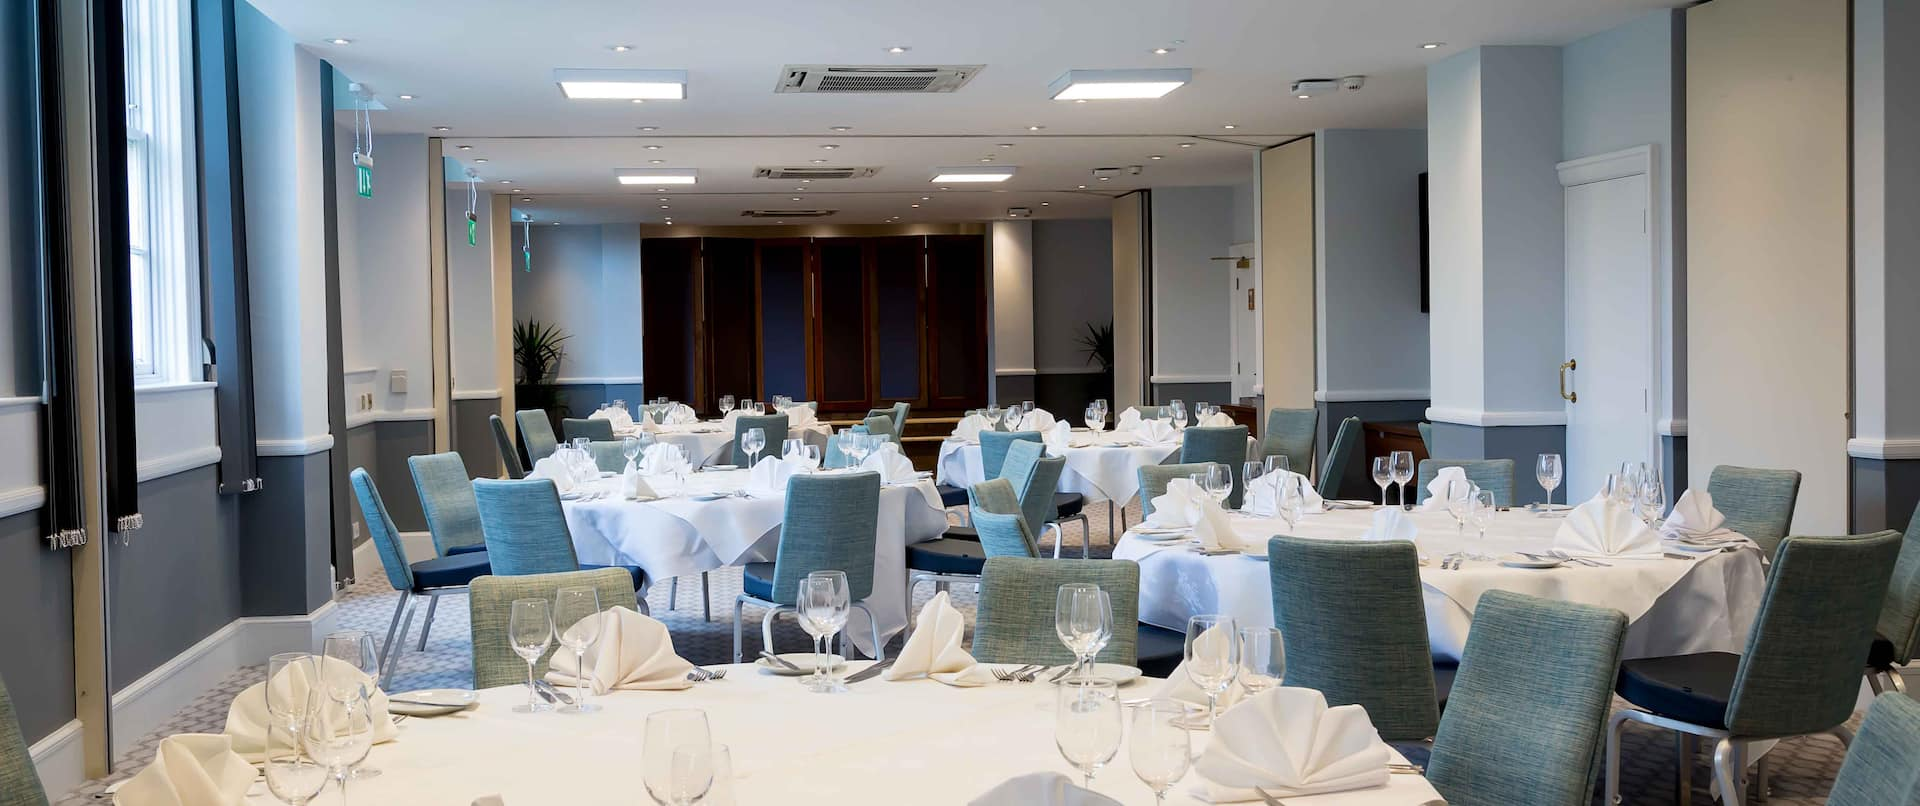 Meeting Room with Round Decorated Banquet Tables